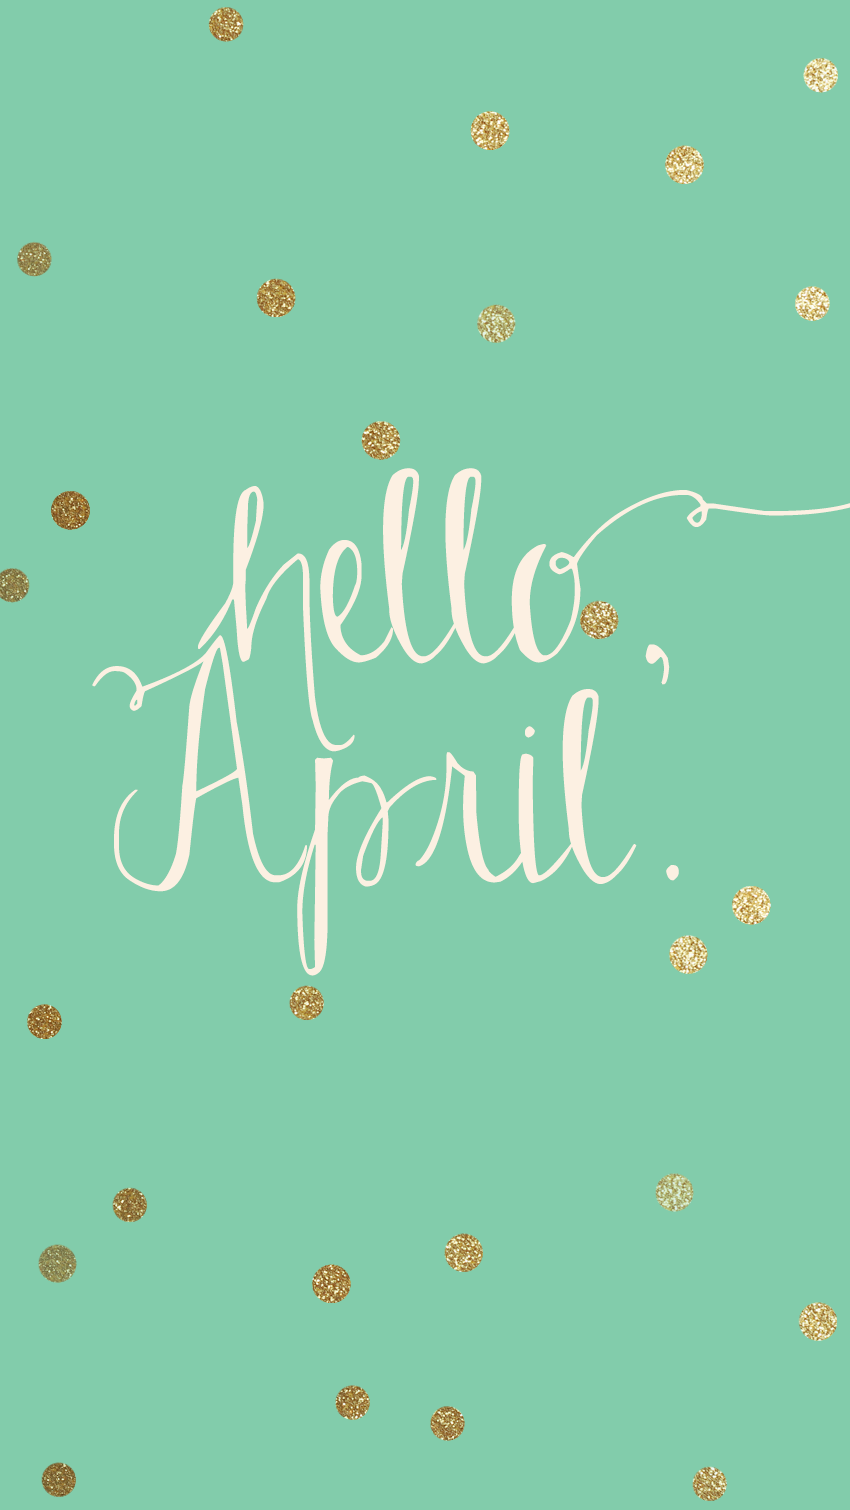 Free Download Hello Aprilpng 850x1510 For Your Desktop Mobile